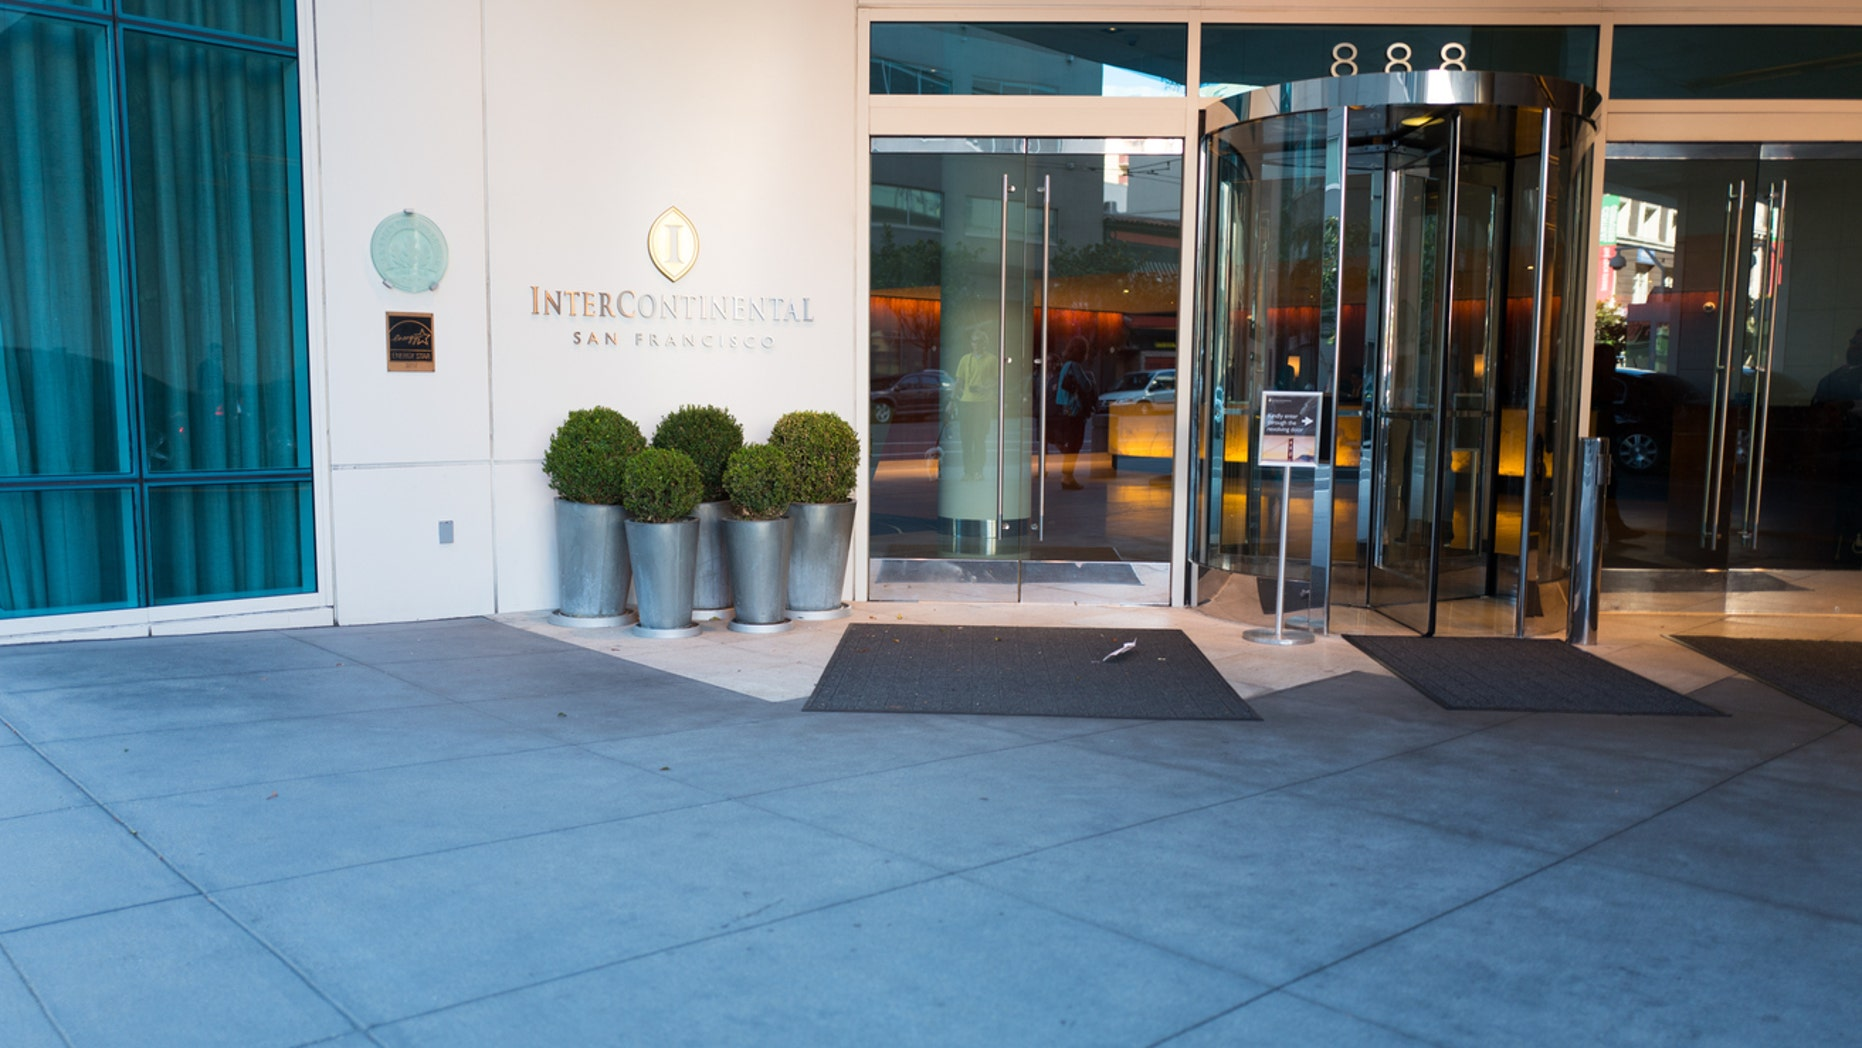 San Francisco, United States - July 1, 2016: Entryway to the Intercontinental Hotel in the South of Mission (SoMA) neighborhood of San Francisco, California